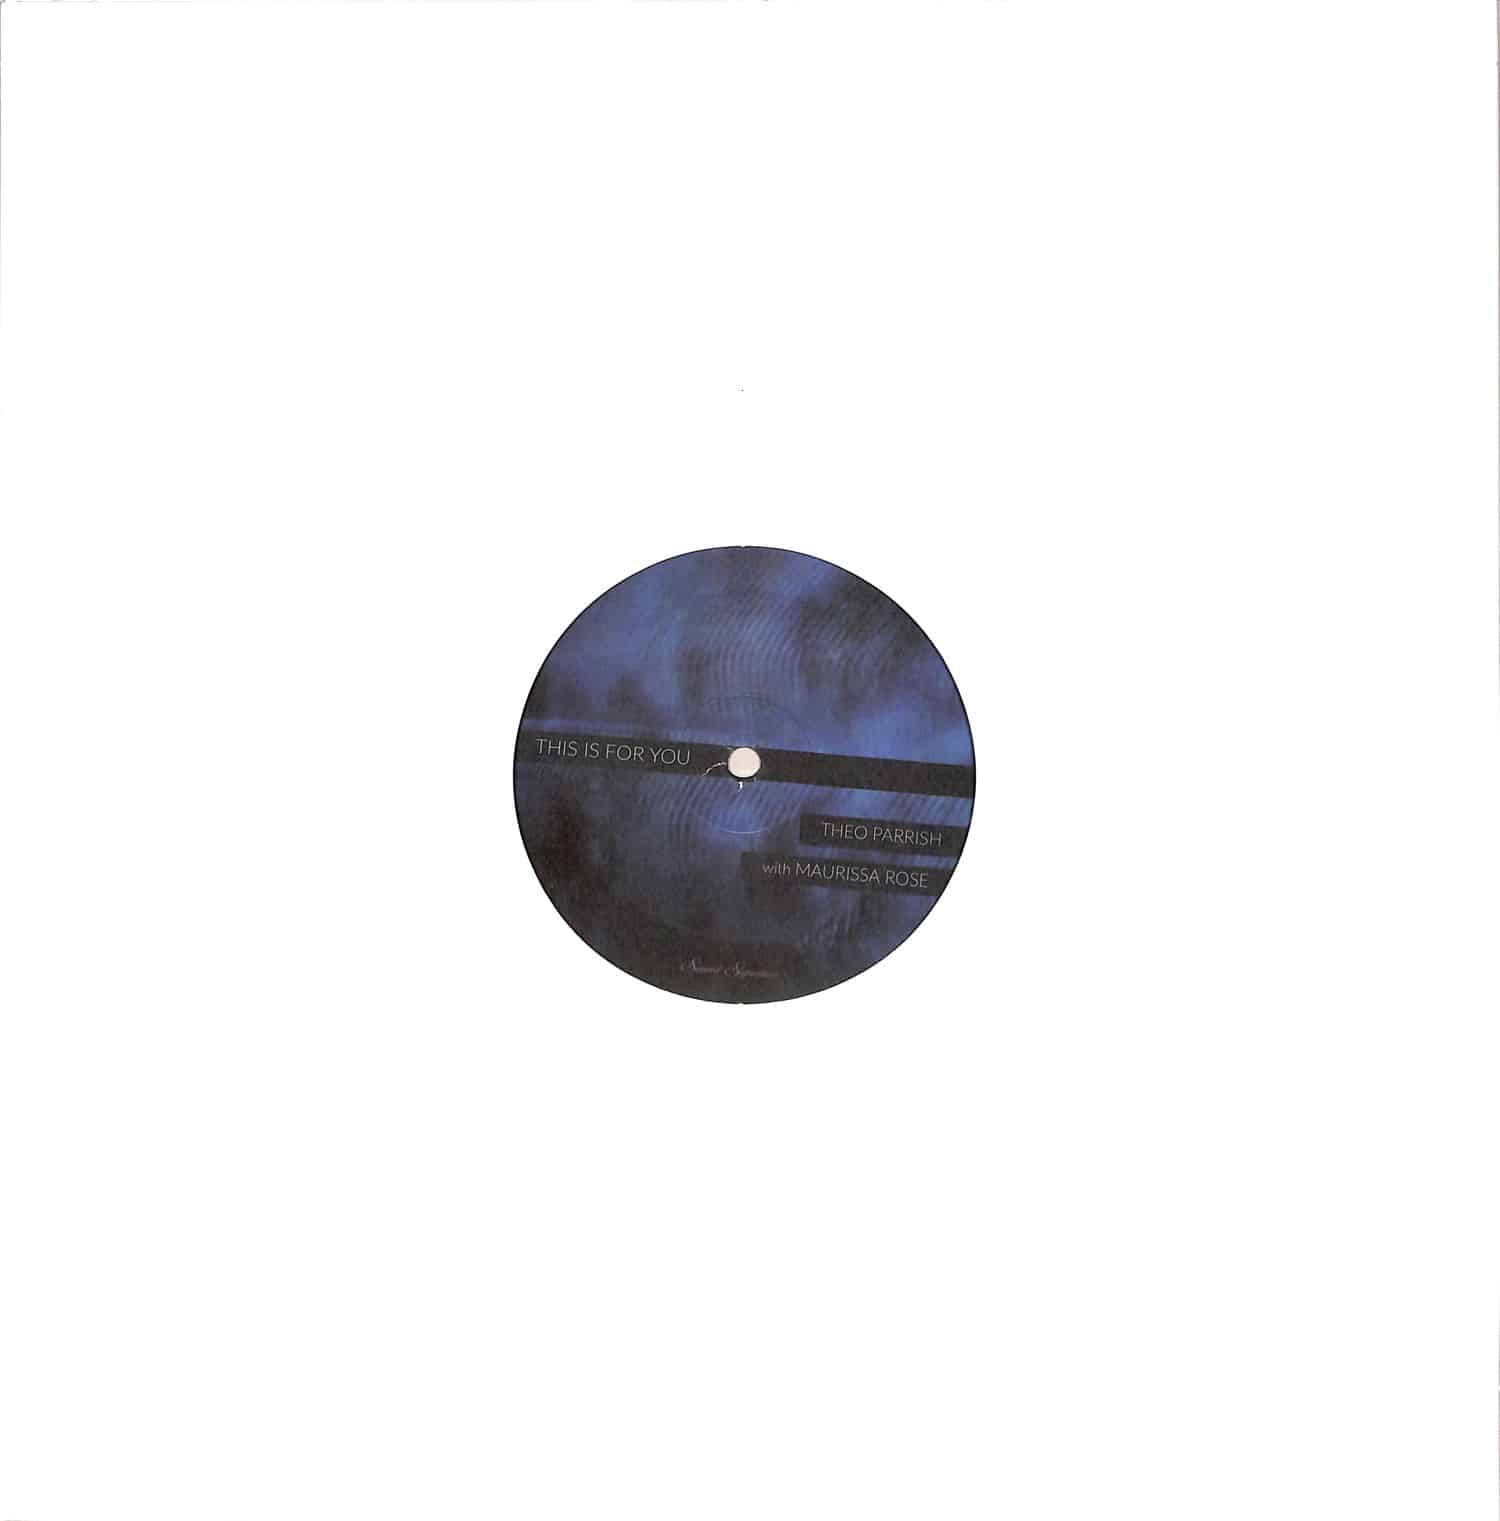 Theo Parrish & Maurissa Rose - THIS IS FOR YOU